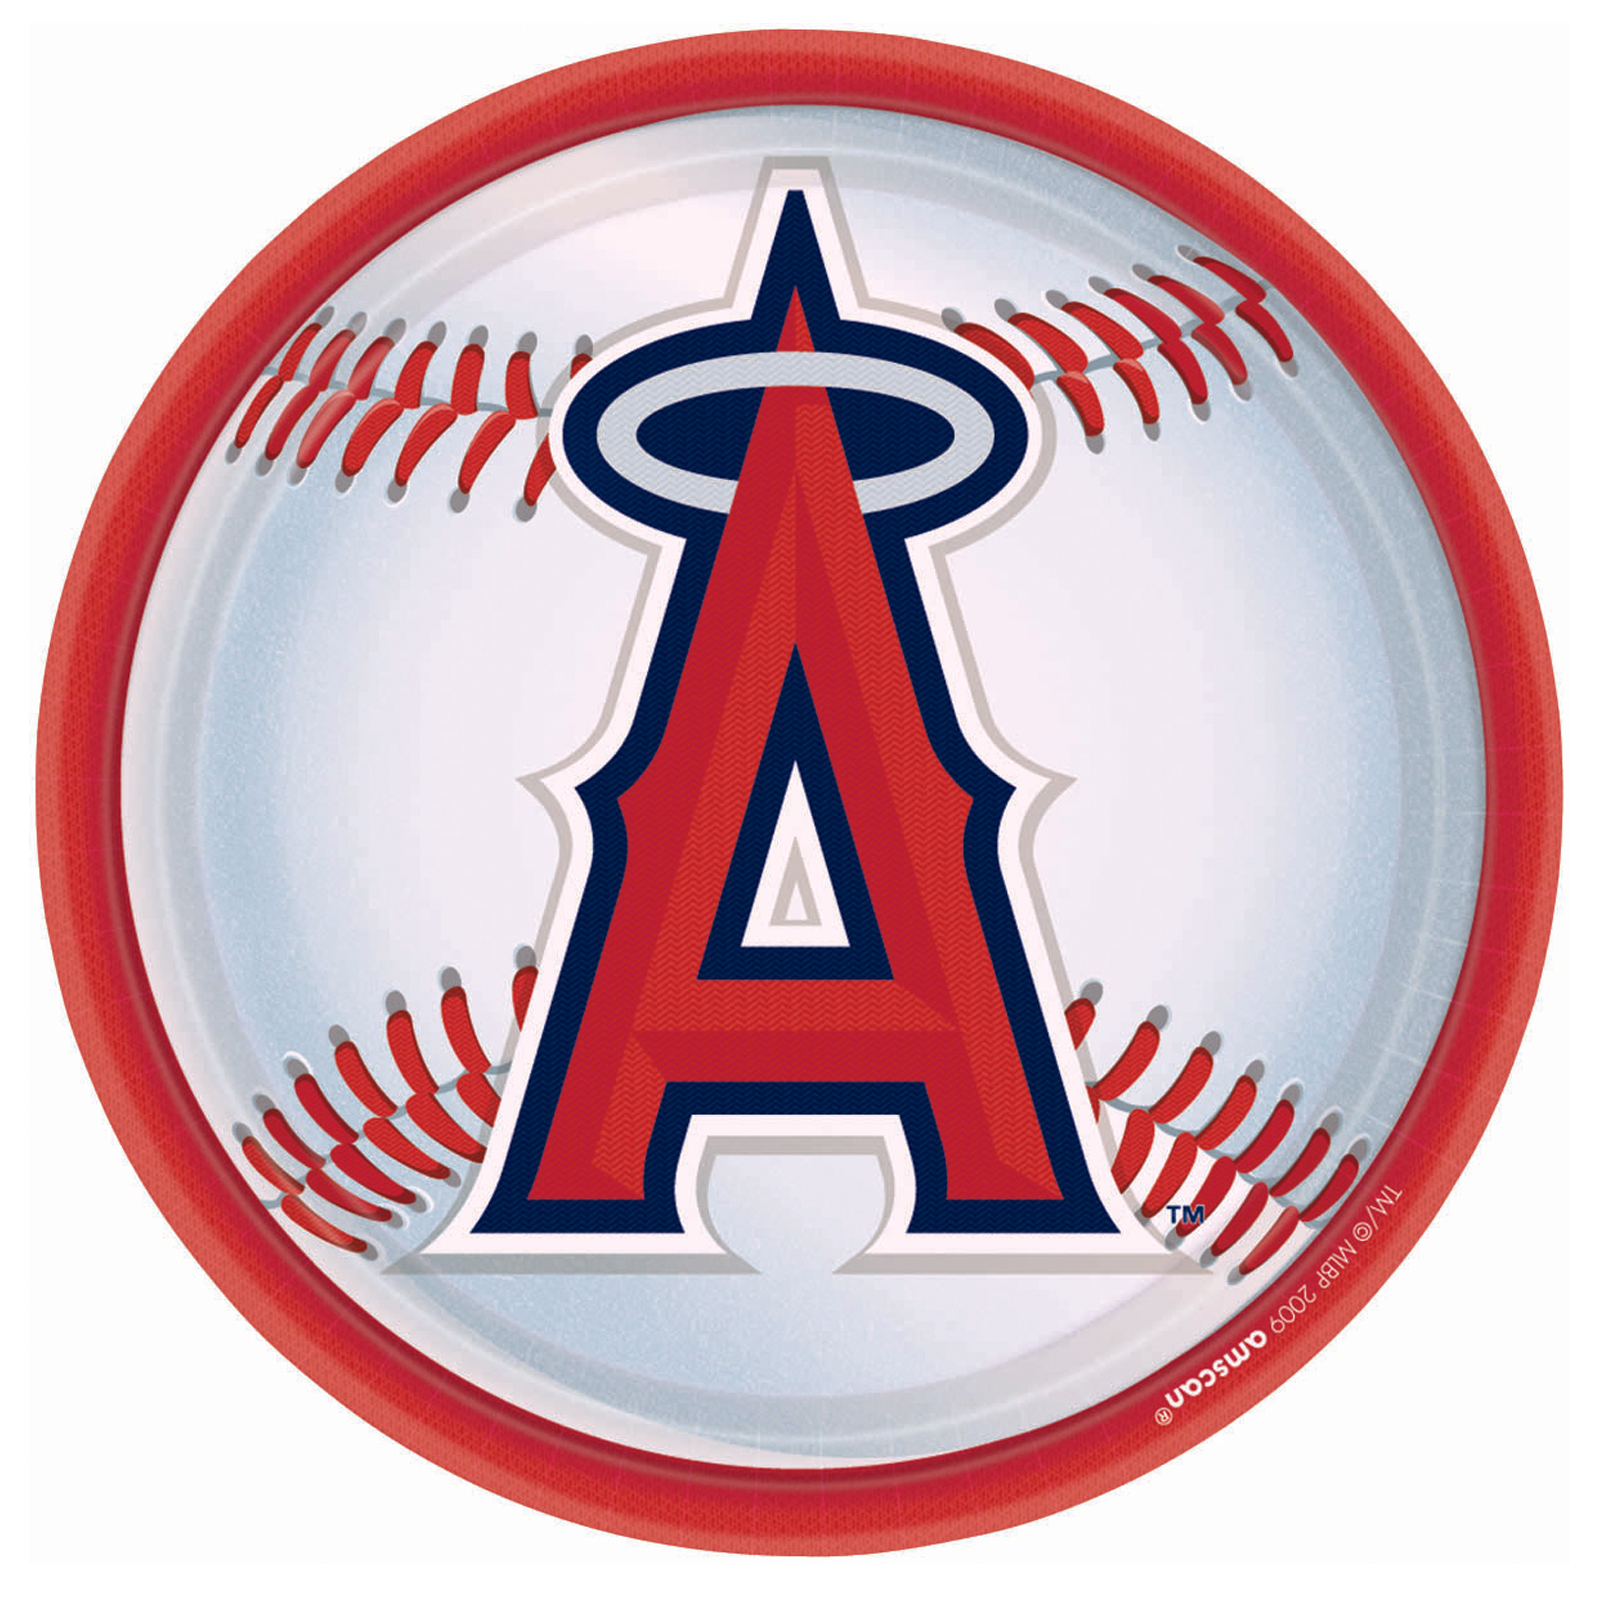 Free Angels Baseball, Download Free Clip Art, Free Clip Art.